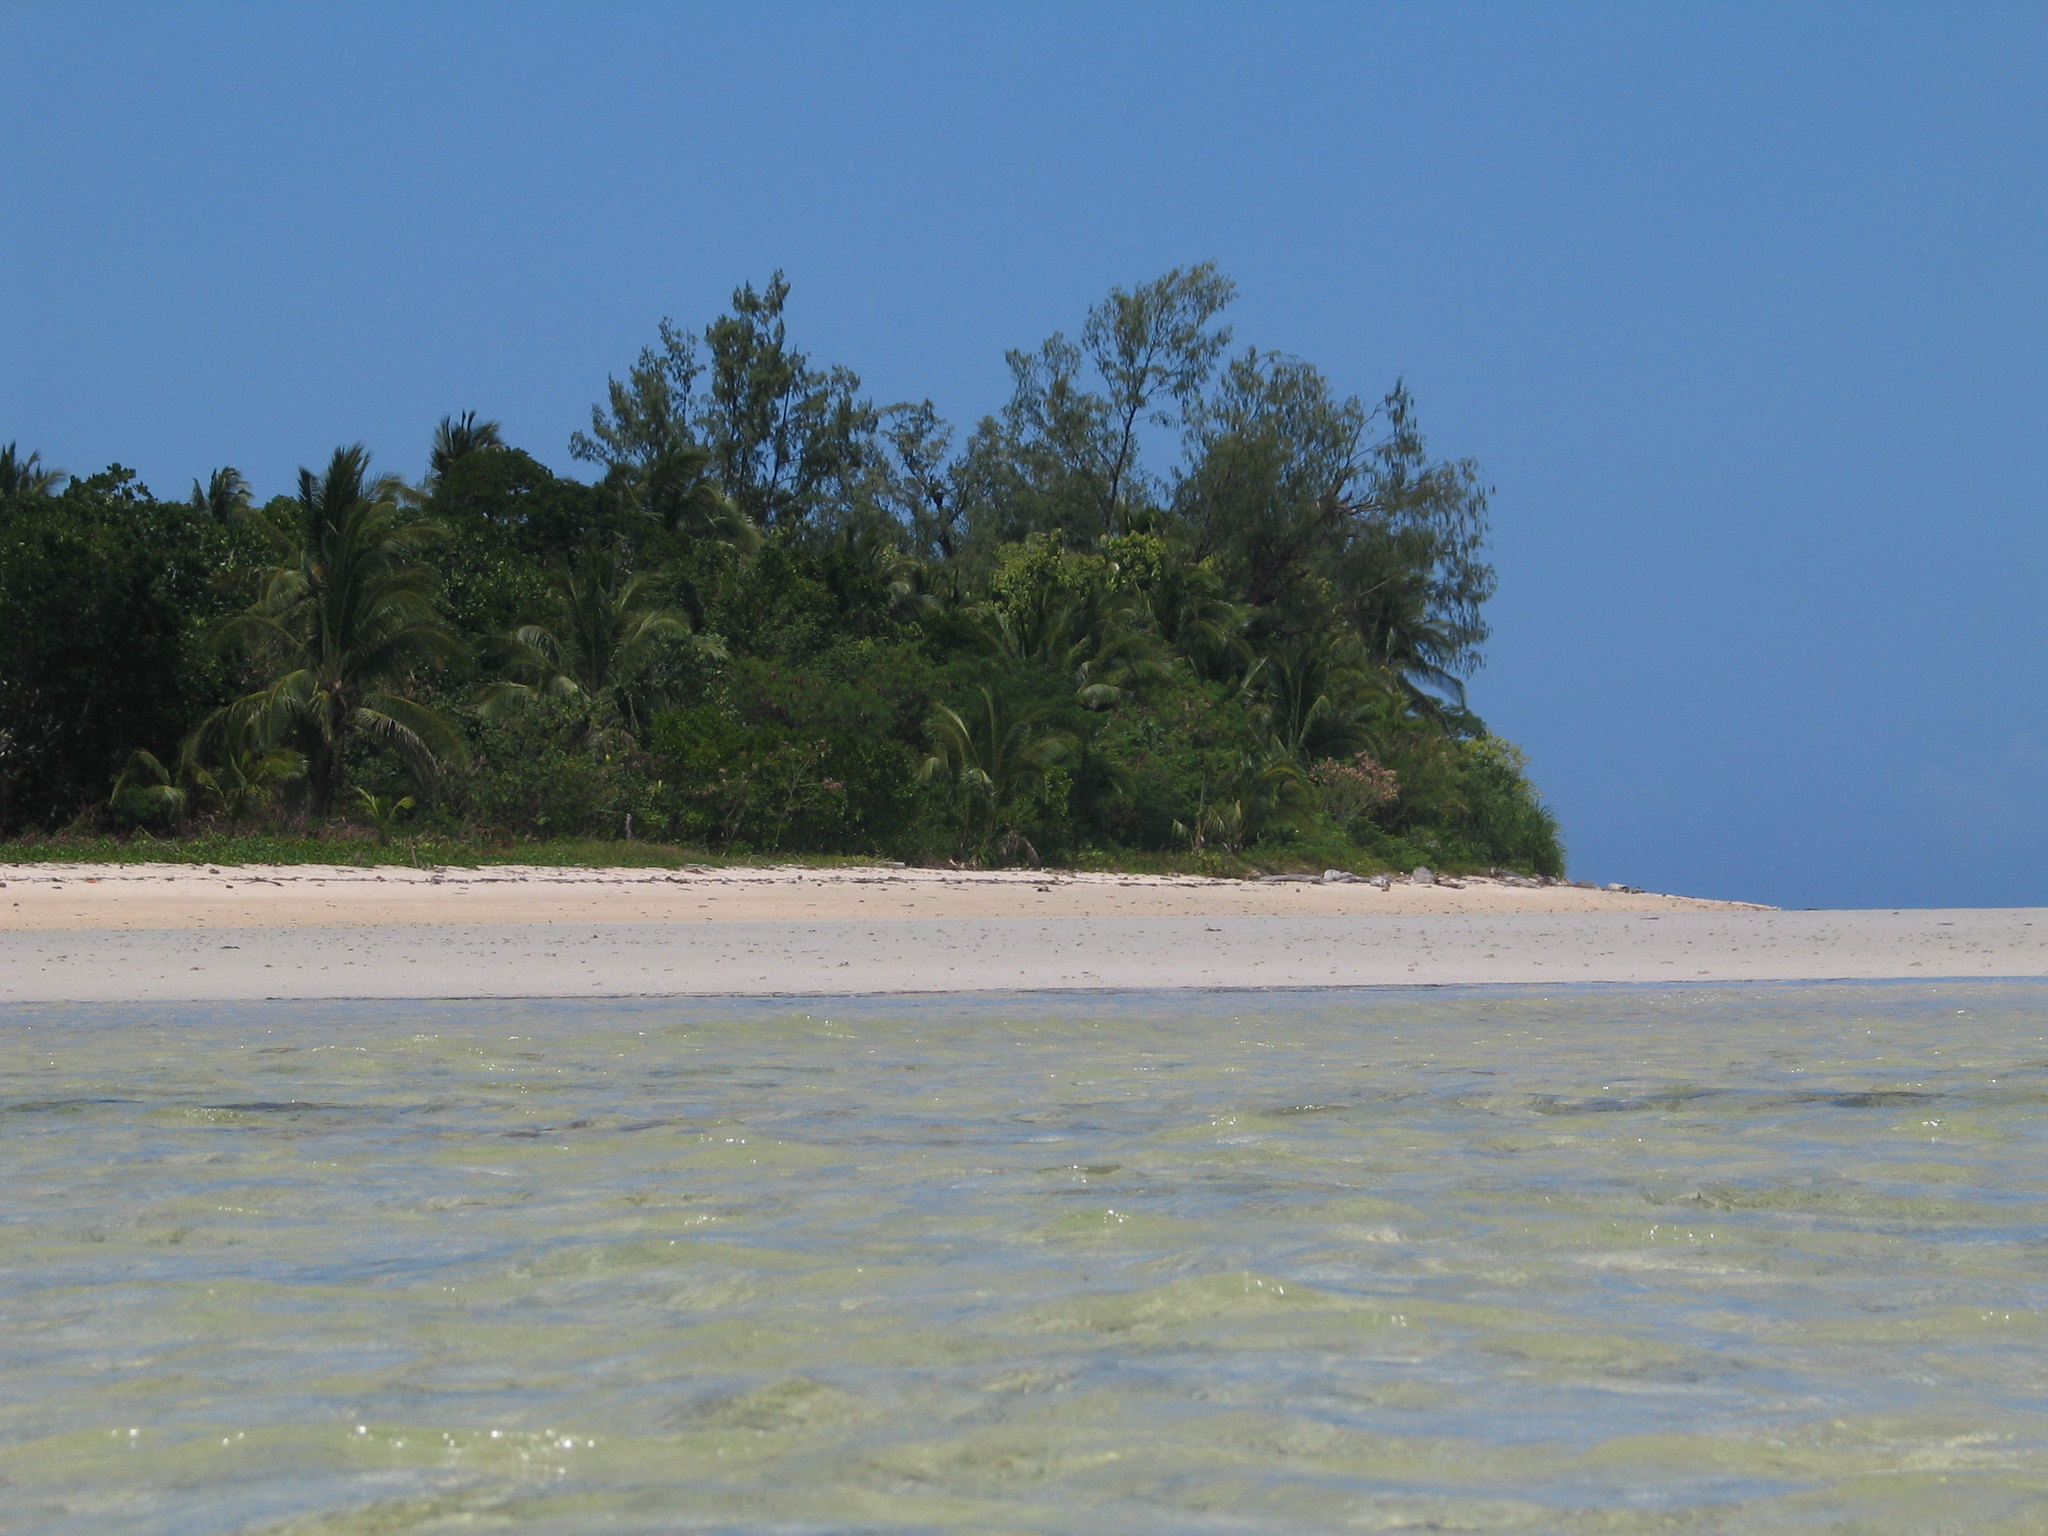 Popular Islands for Camping in the Philippines5